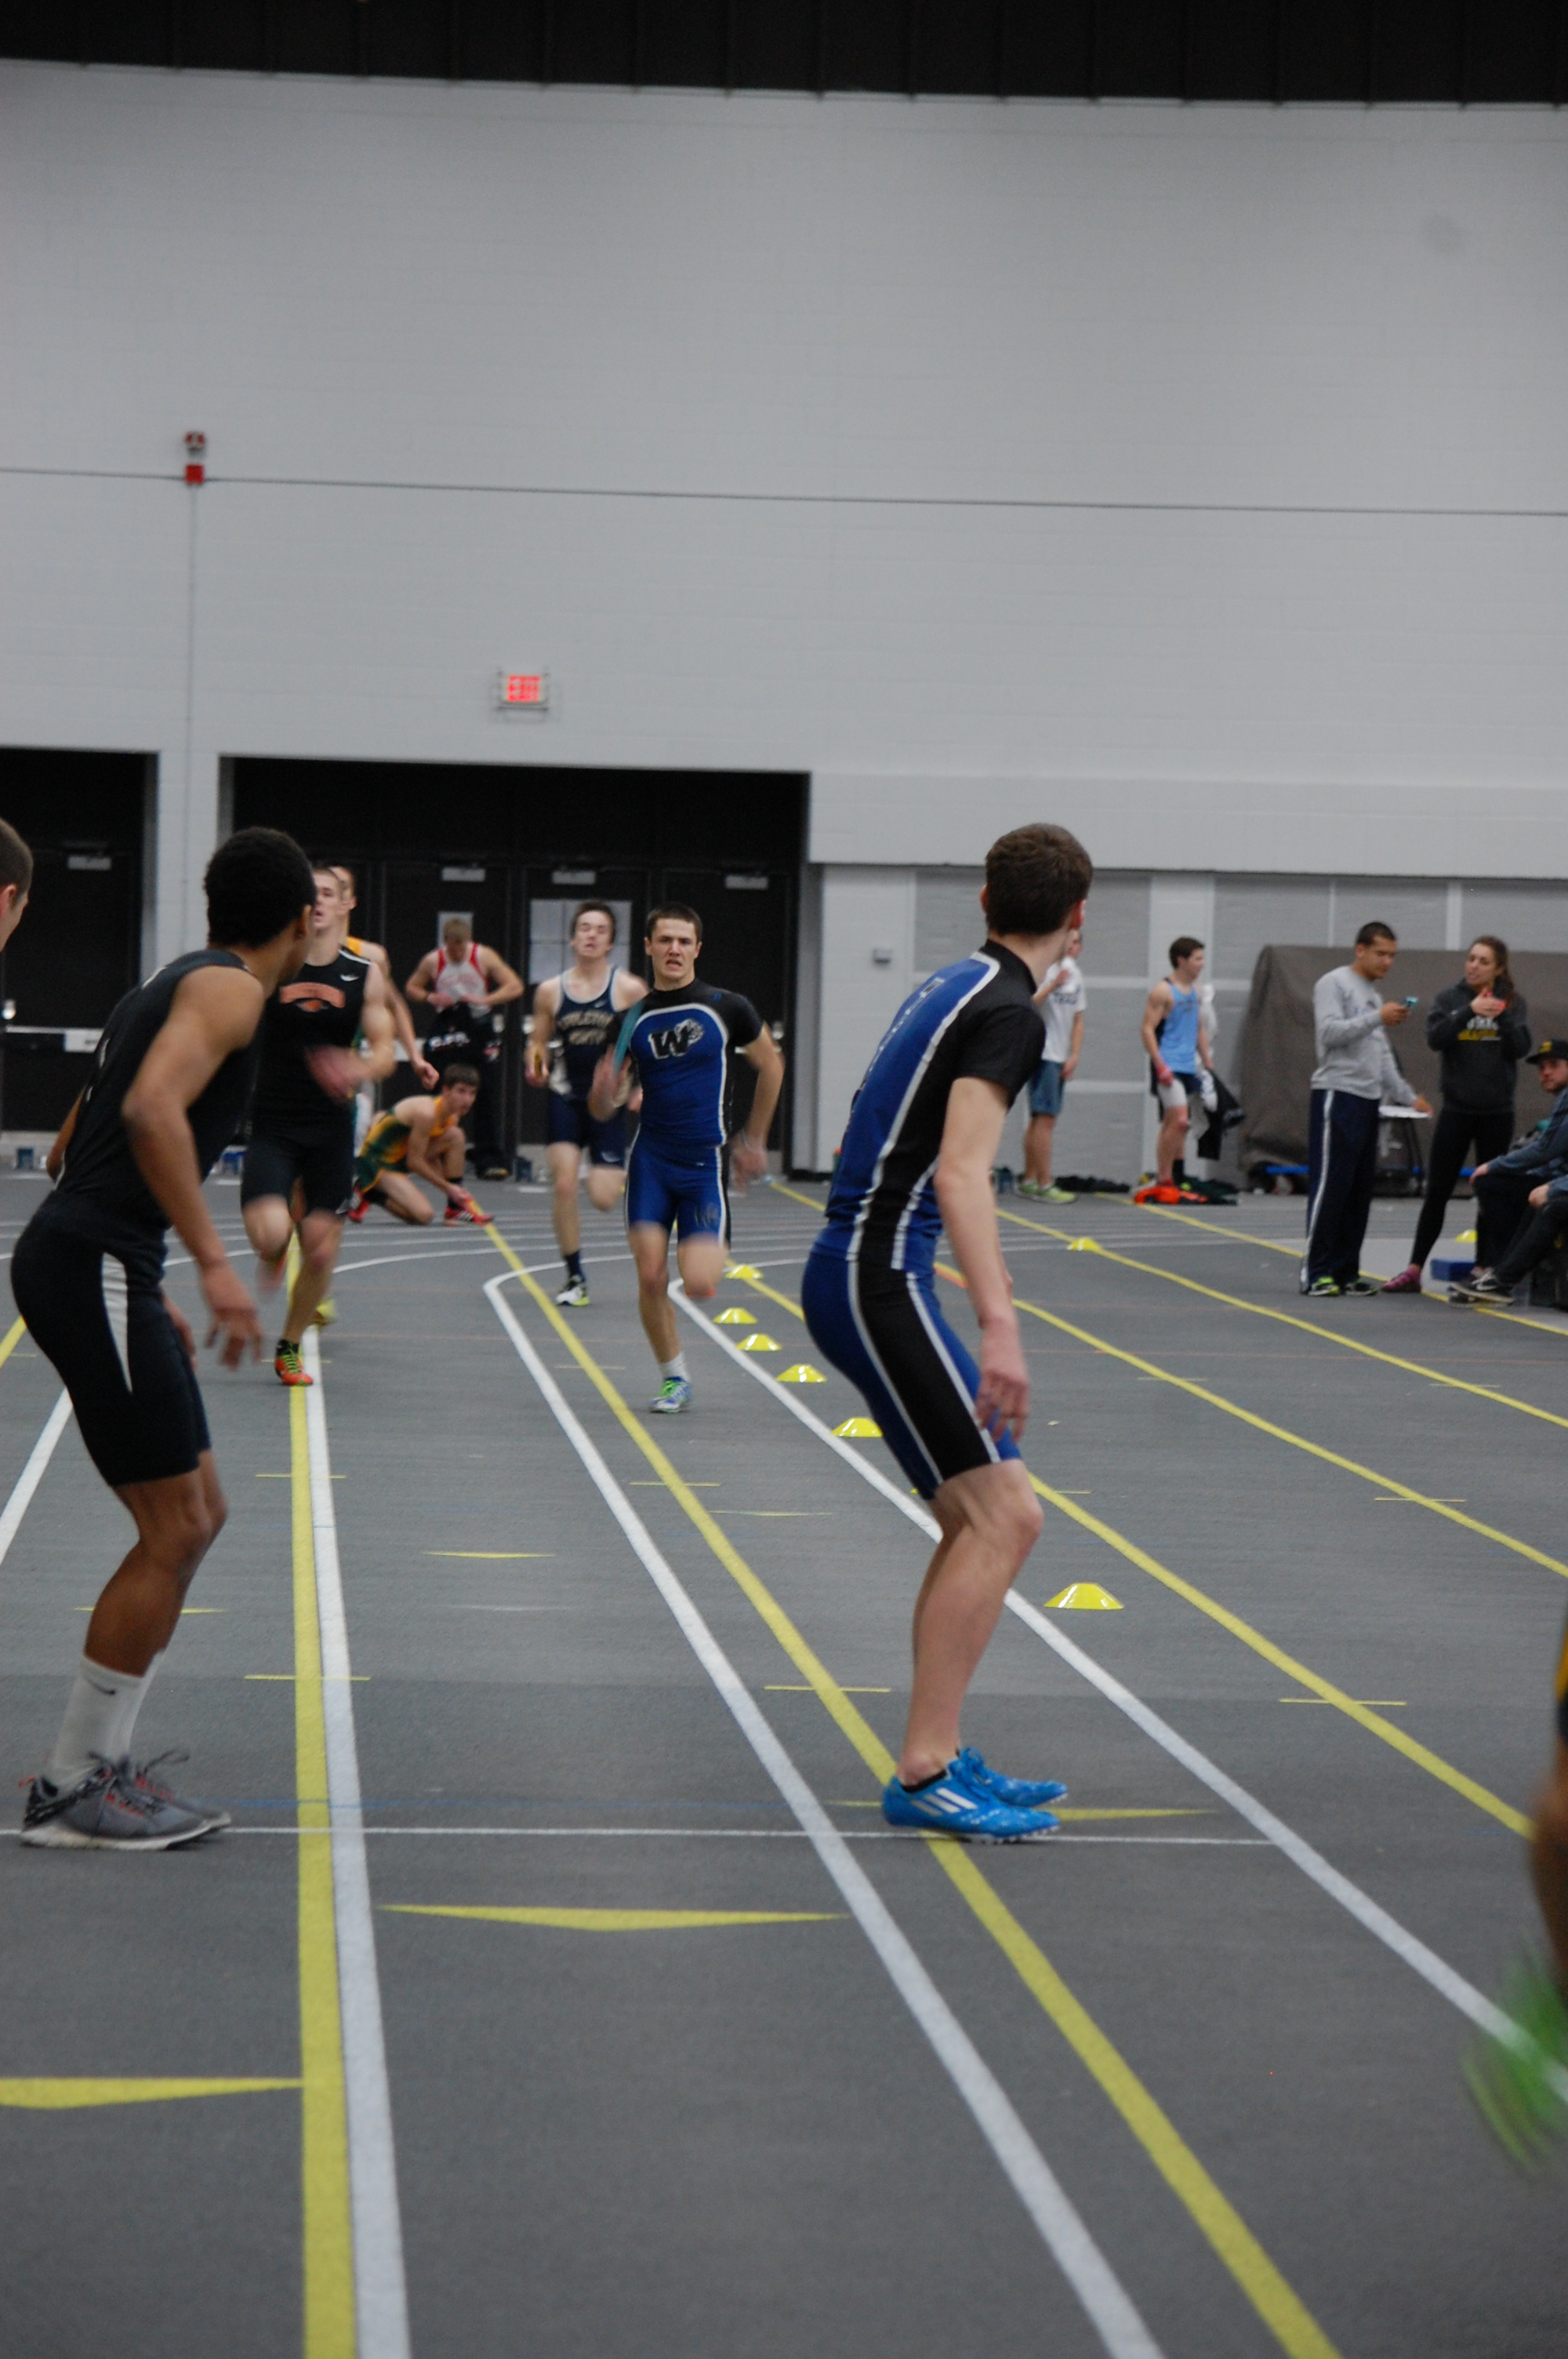 Isaiah Merrill finishes his leg of the 1600 meter relay as he prepares to hand off to Alec Mueller.